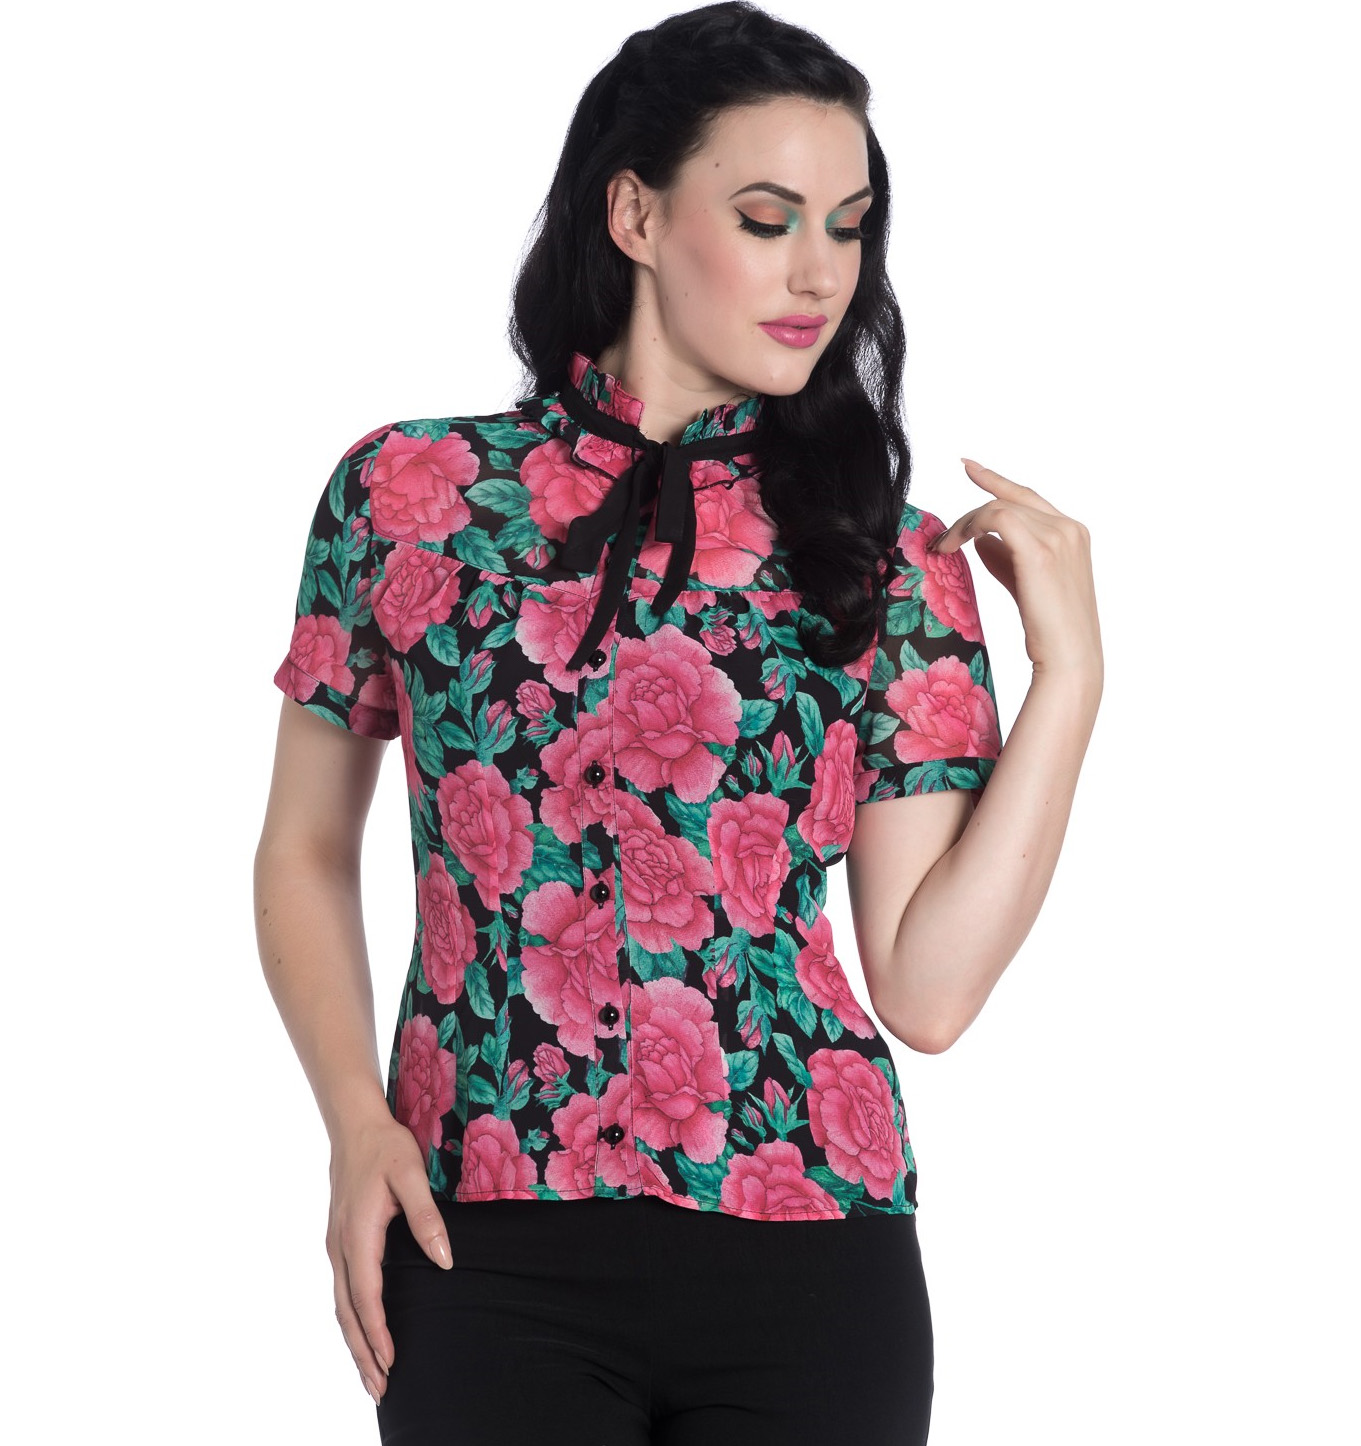 Hell-Bunny-Shirt-Top-Flowers-Roses-EDEN-ROSE-Black-Pink-Blouse-All-Sizes thumbnail 15